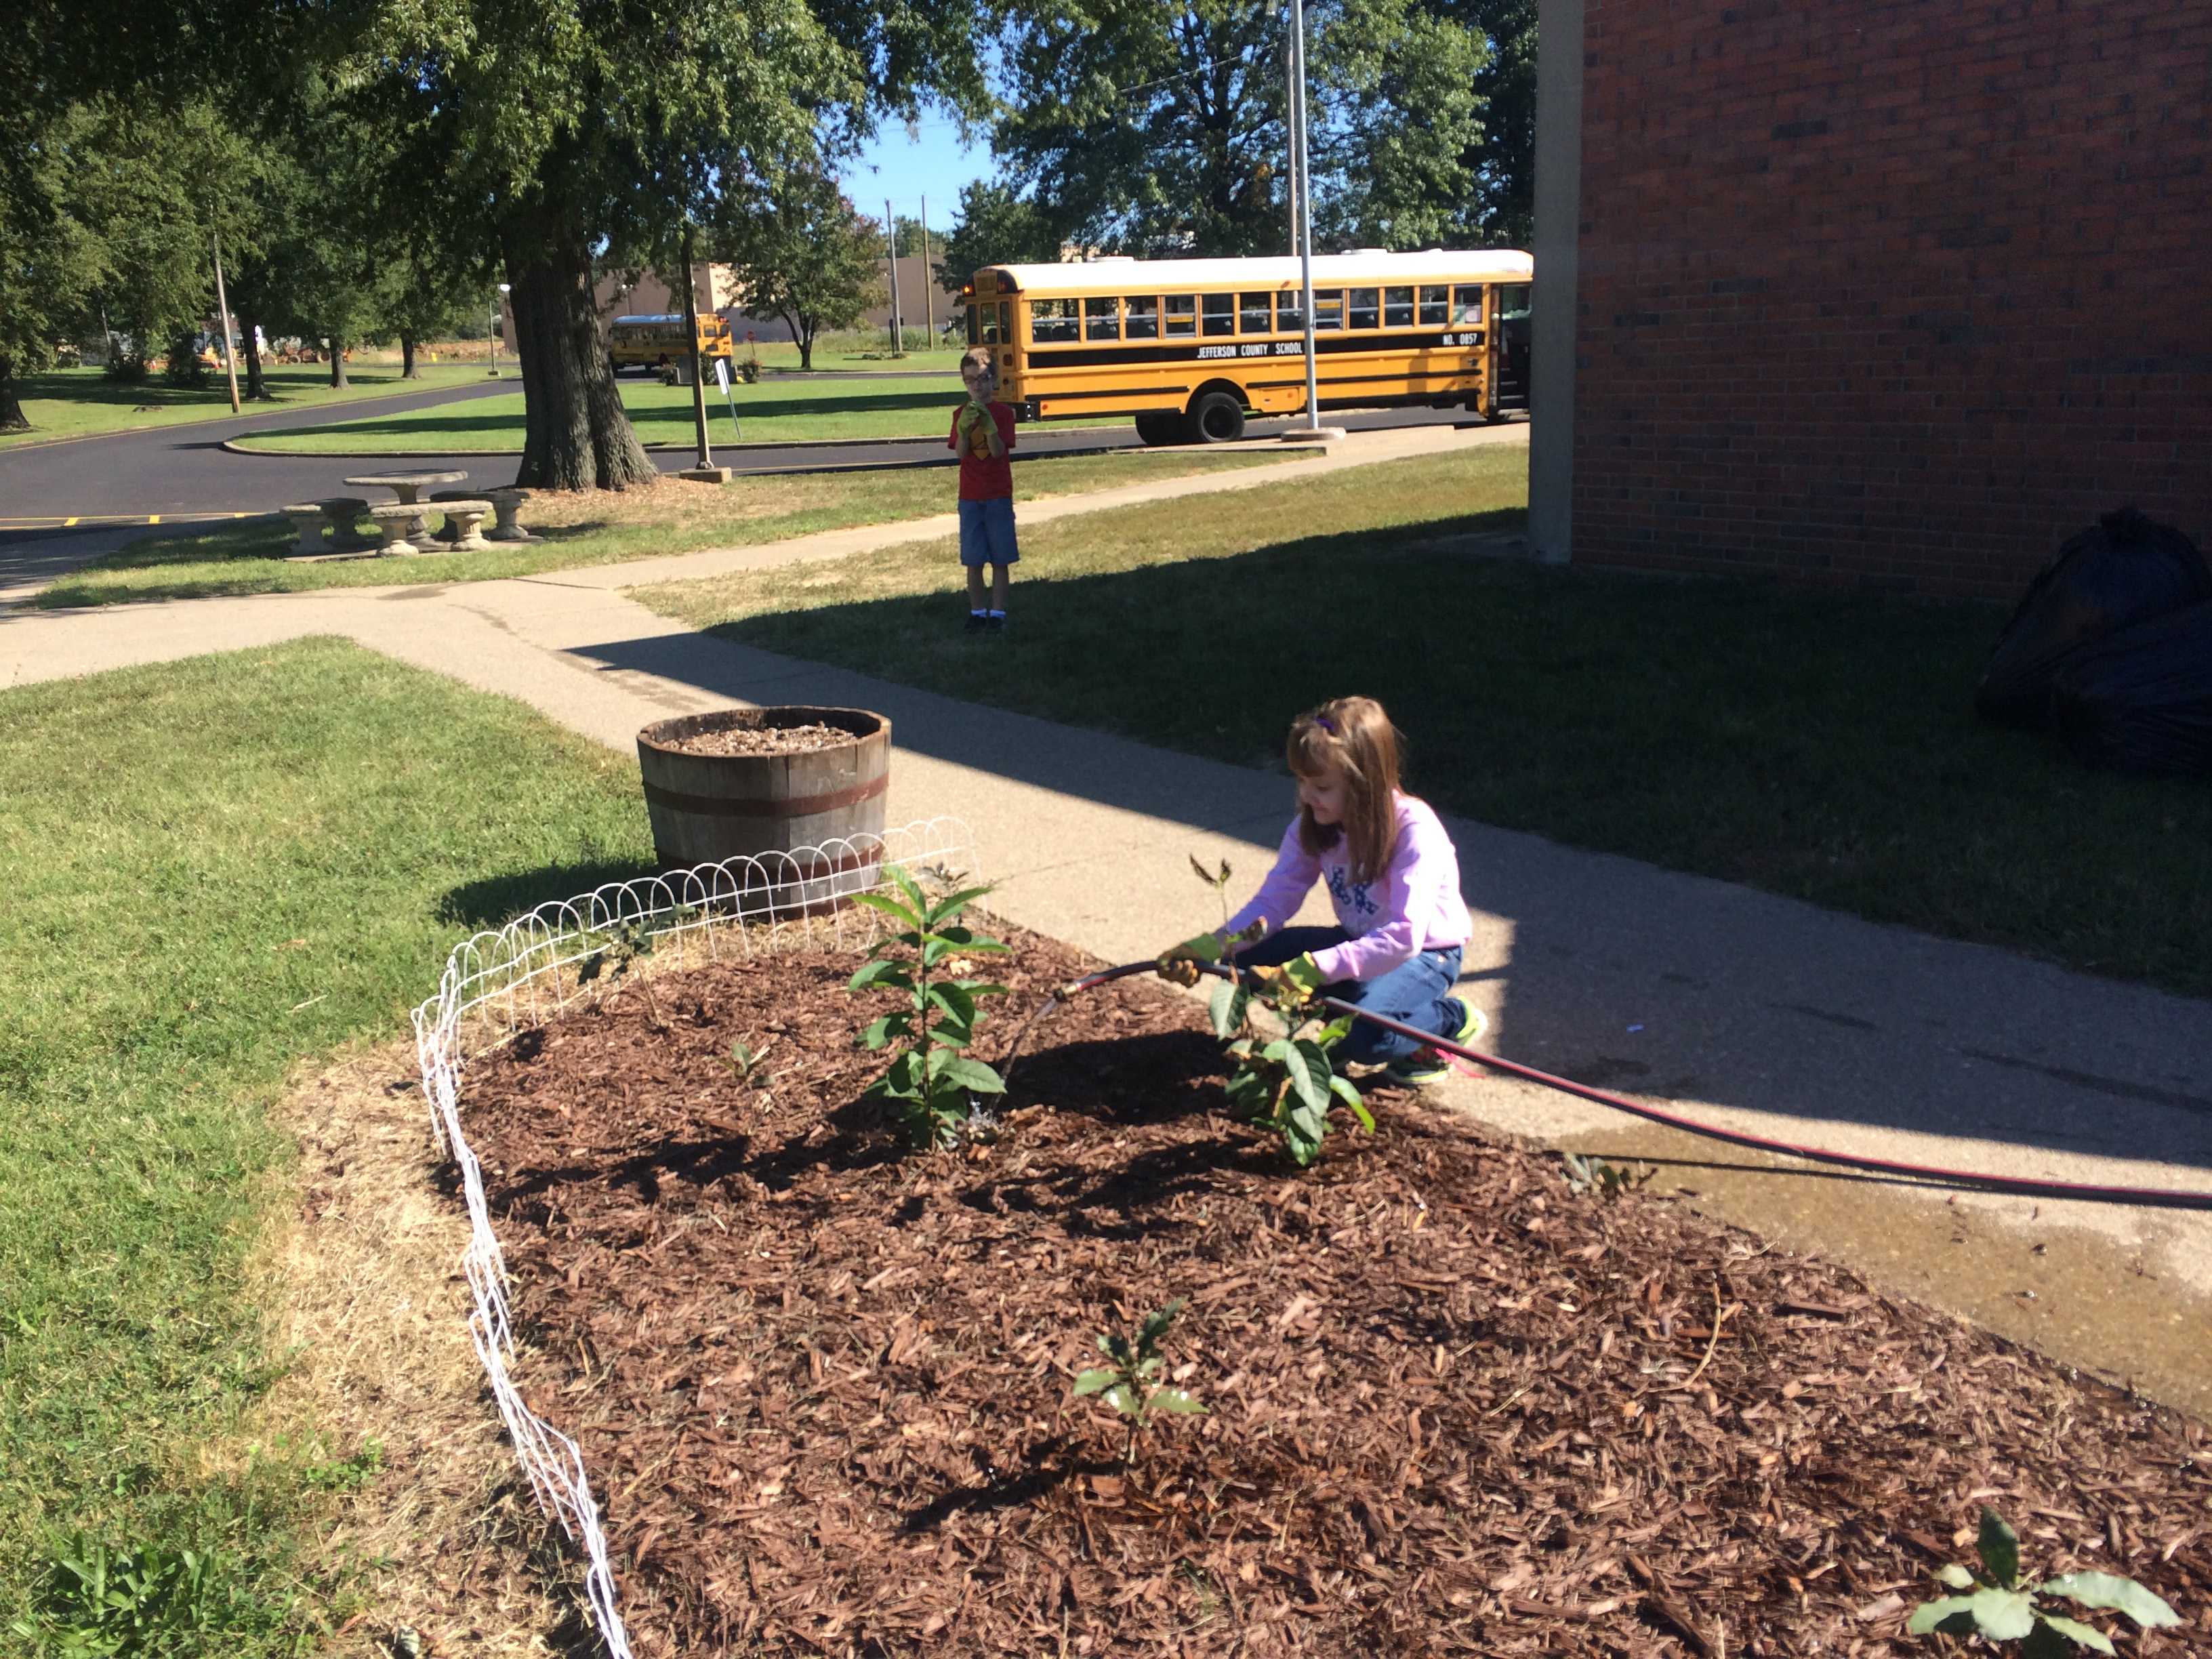 One student watering the plants so they can grow big and strong.